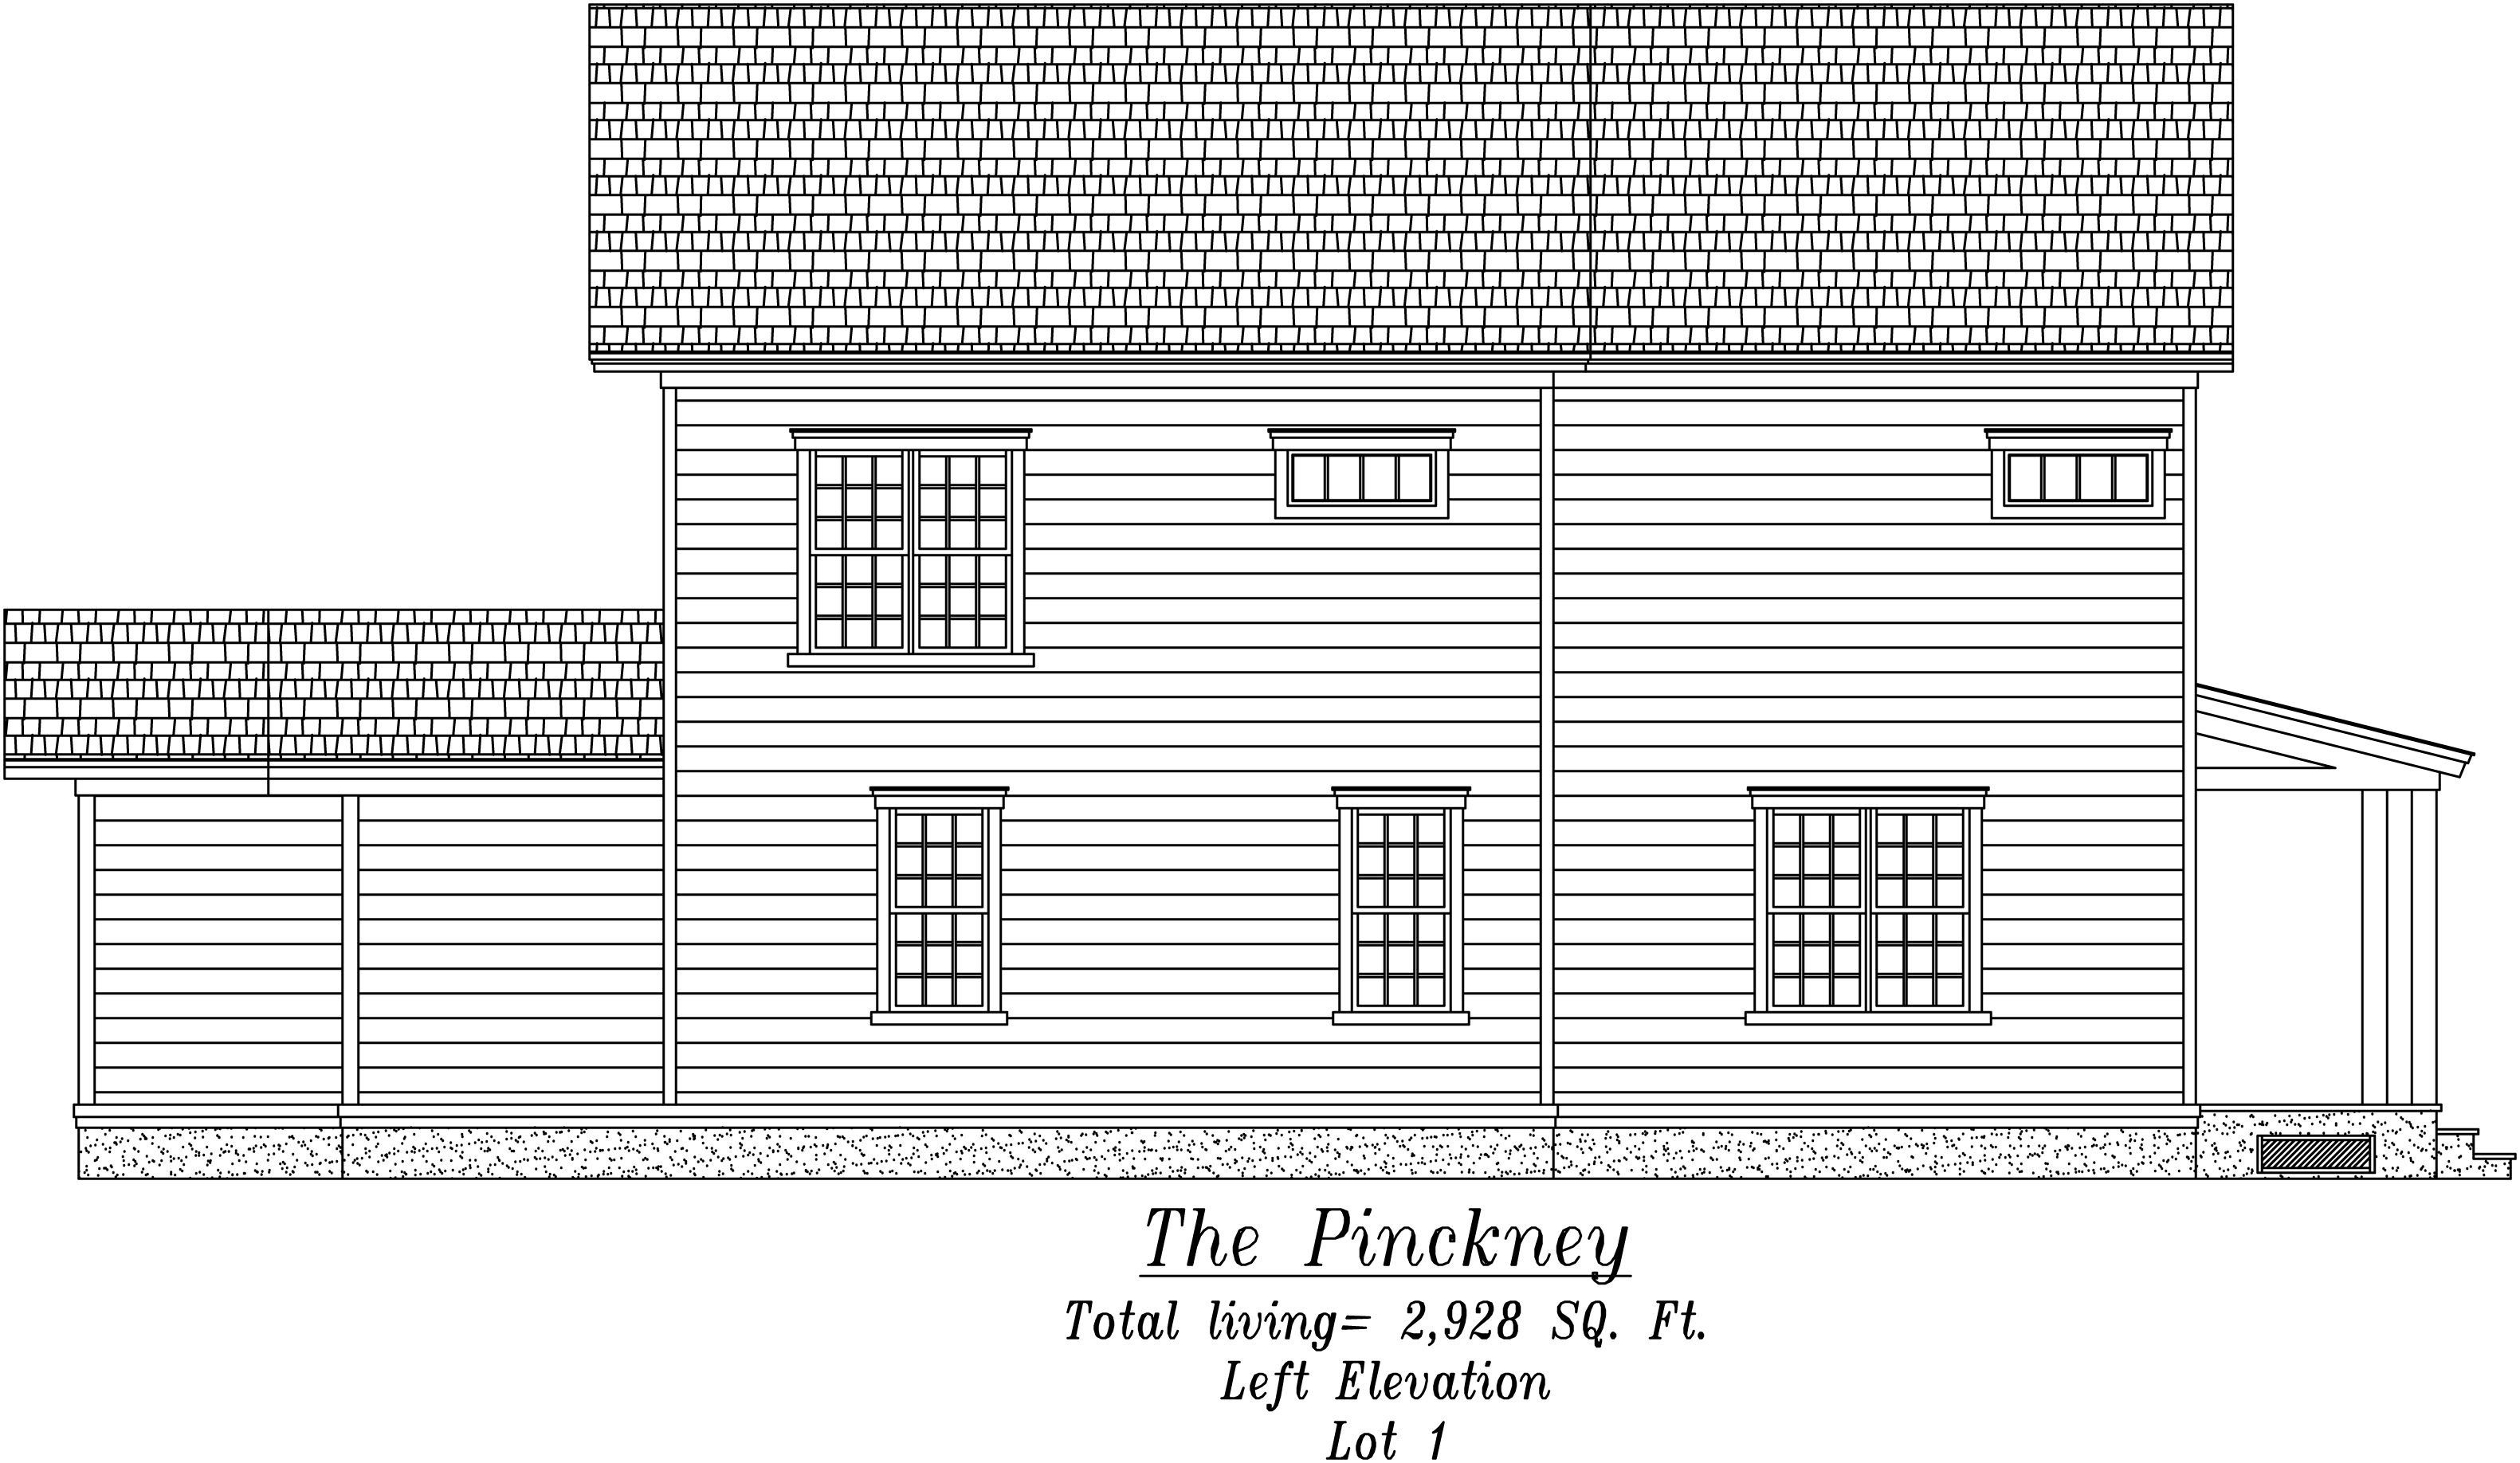 Pinckney Left Elevation